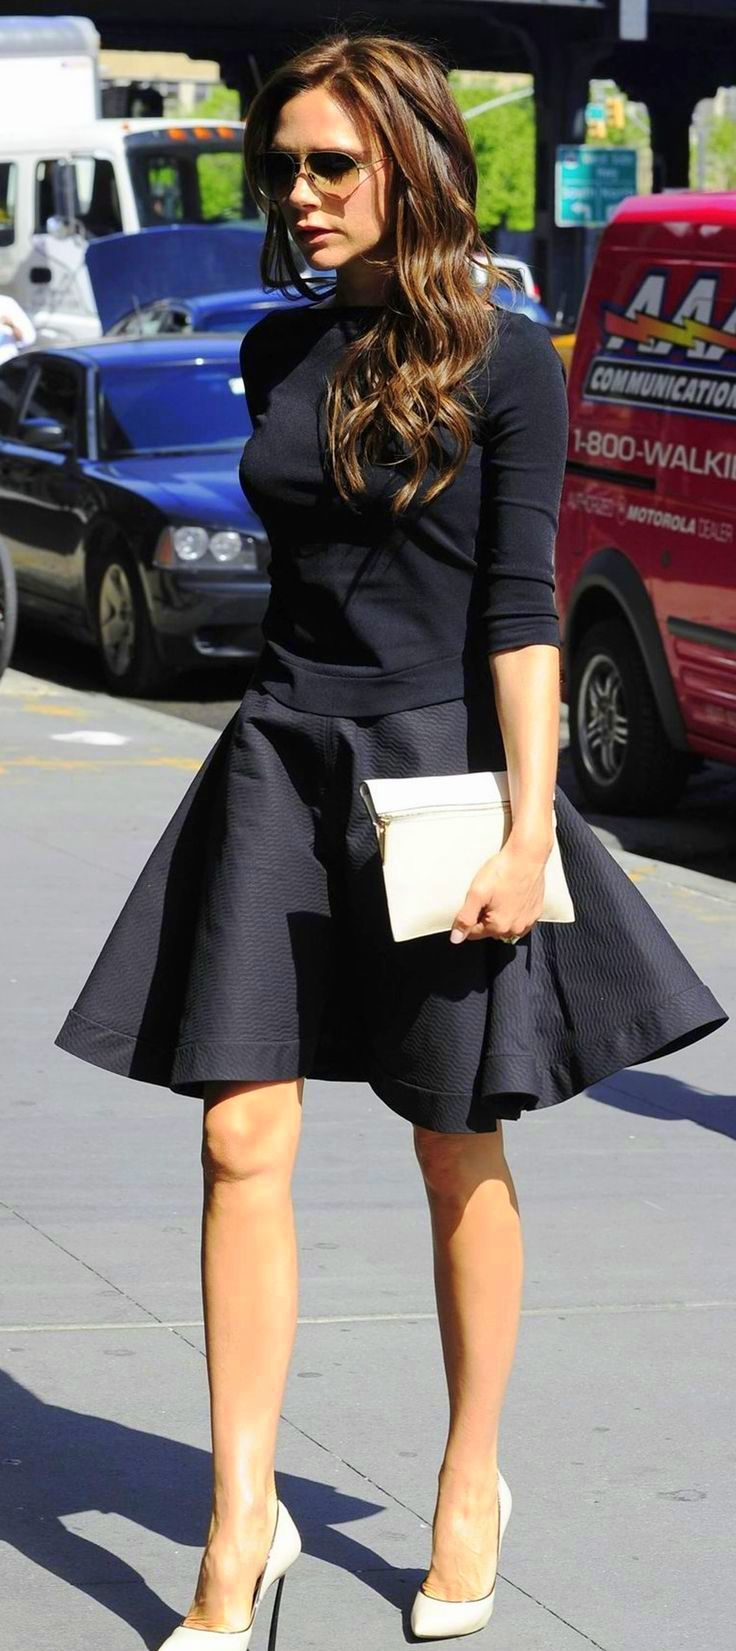 classic navy pullover classic navy skirt off while clutch and off white shoes.